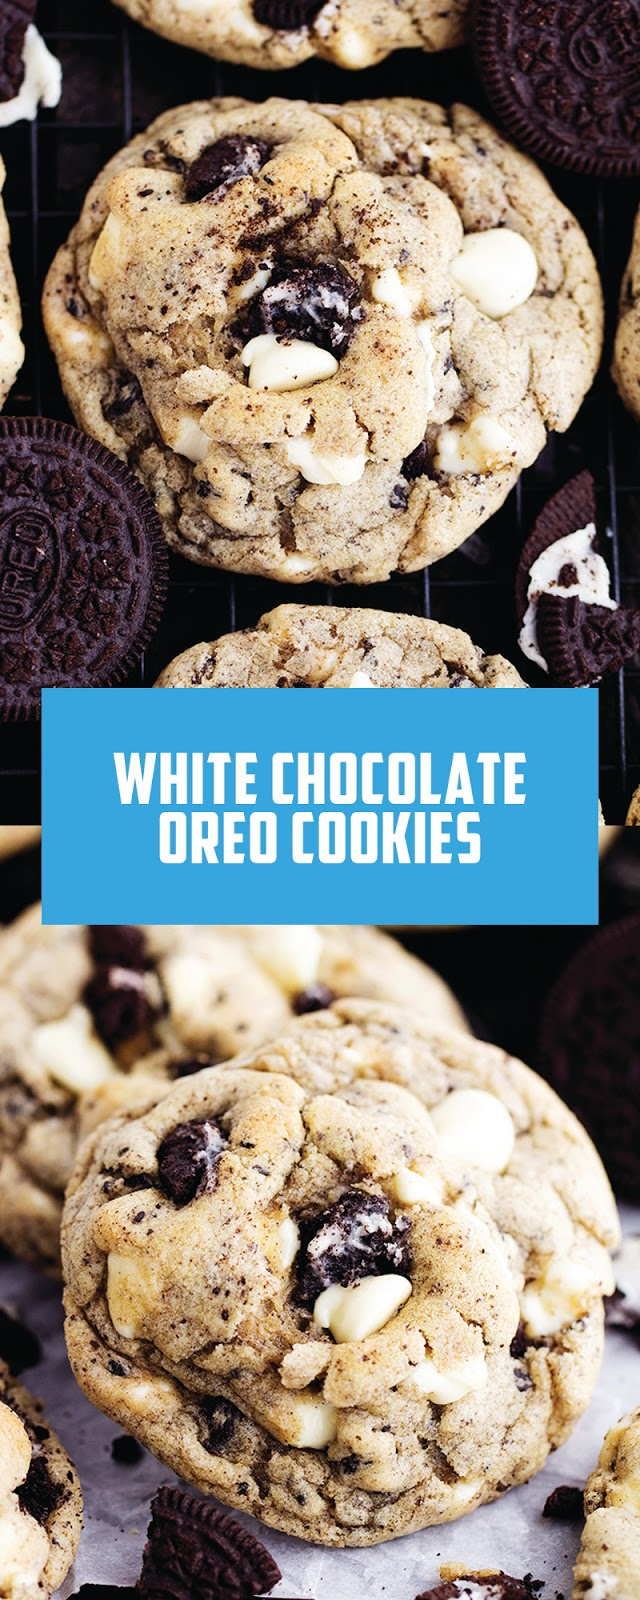 WHITE CHOCOLATE OREO COOKIES